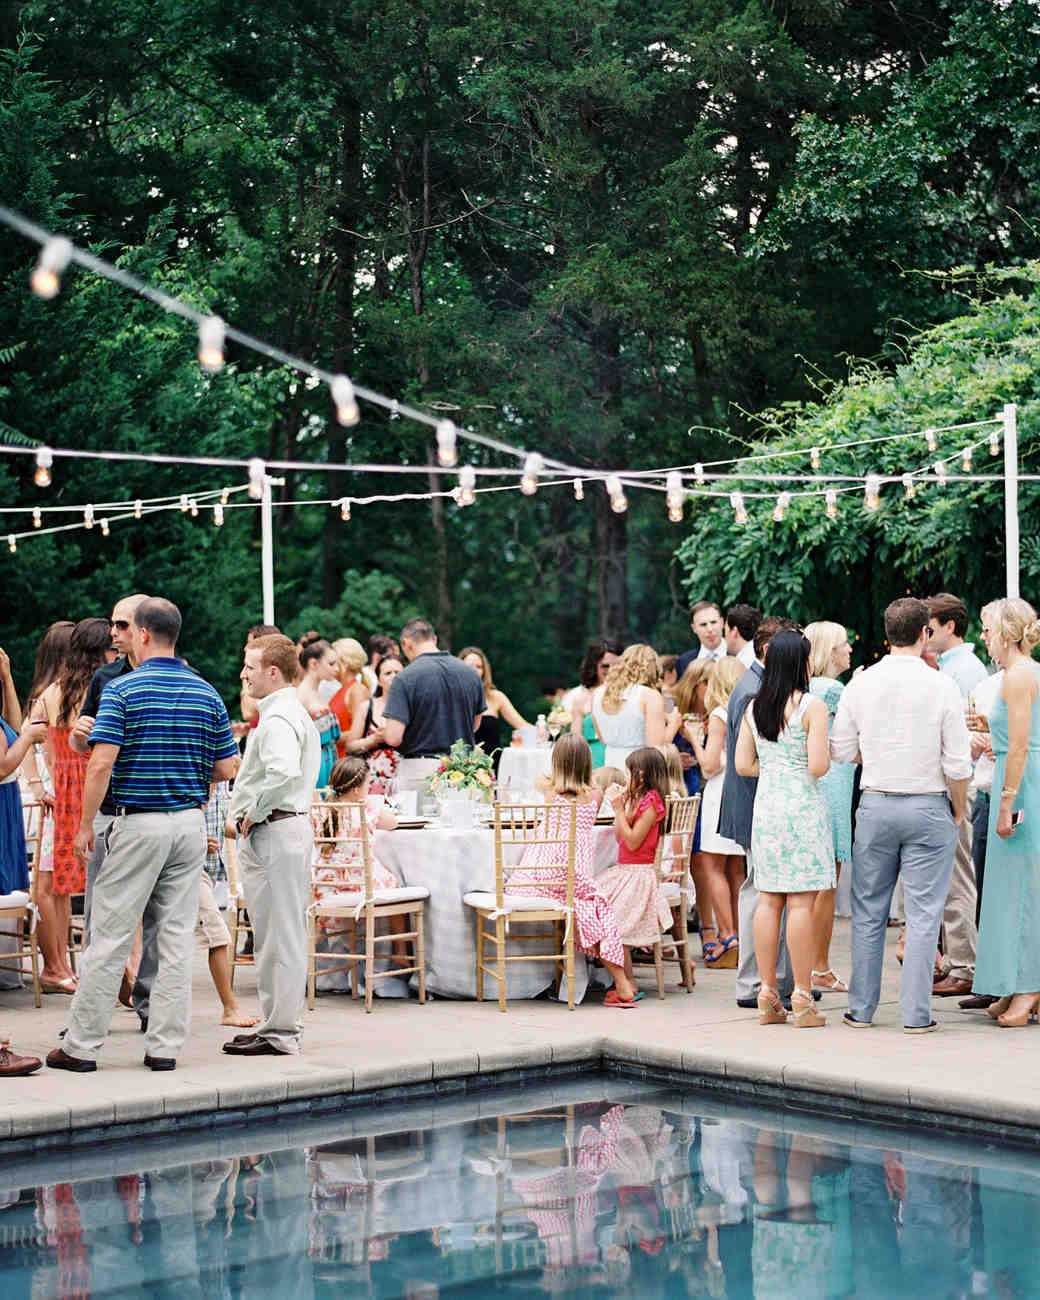 simply-chic-events-bridal-shower-1016.jpg (skyword:345022)